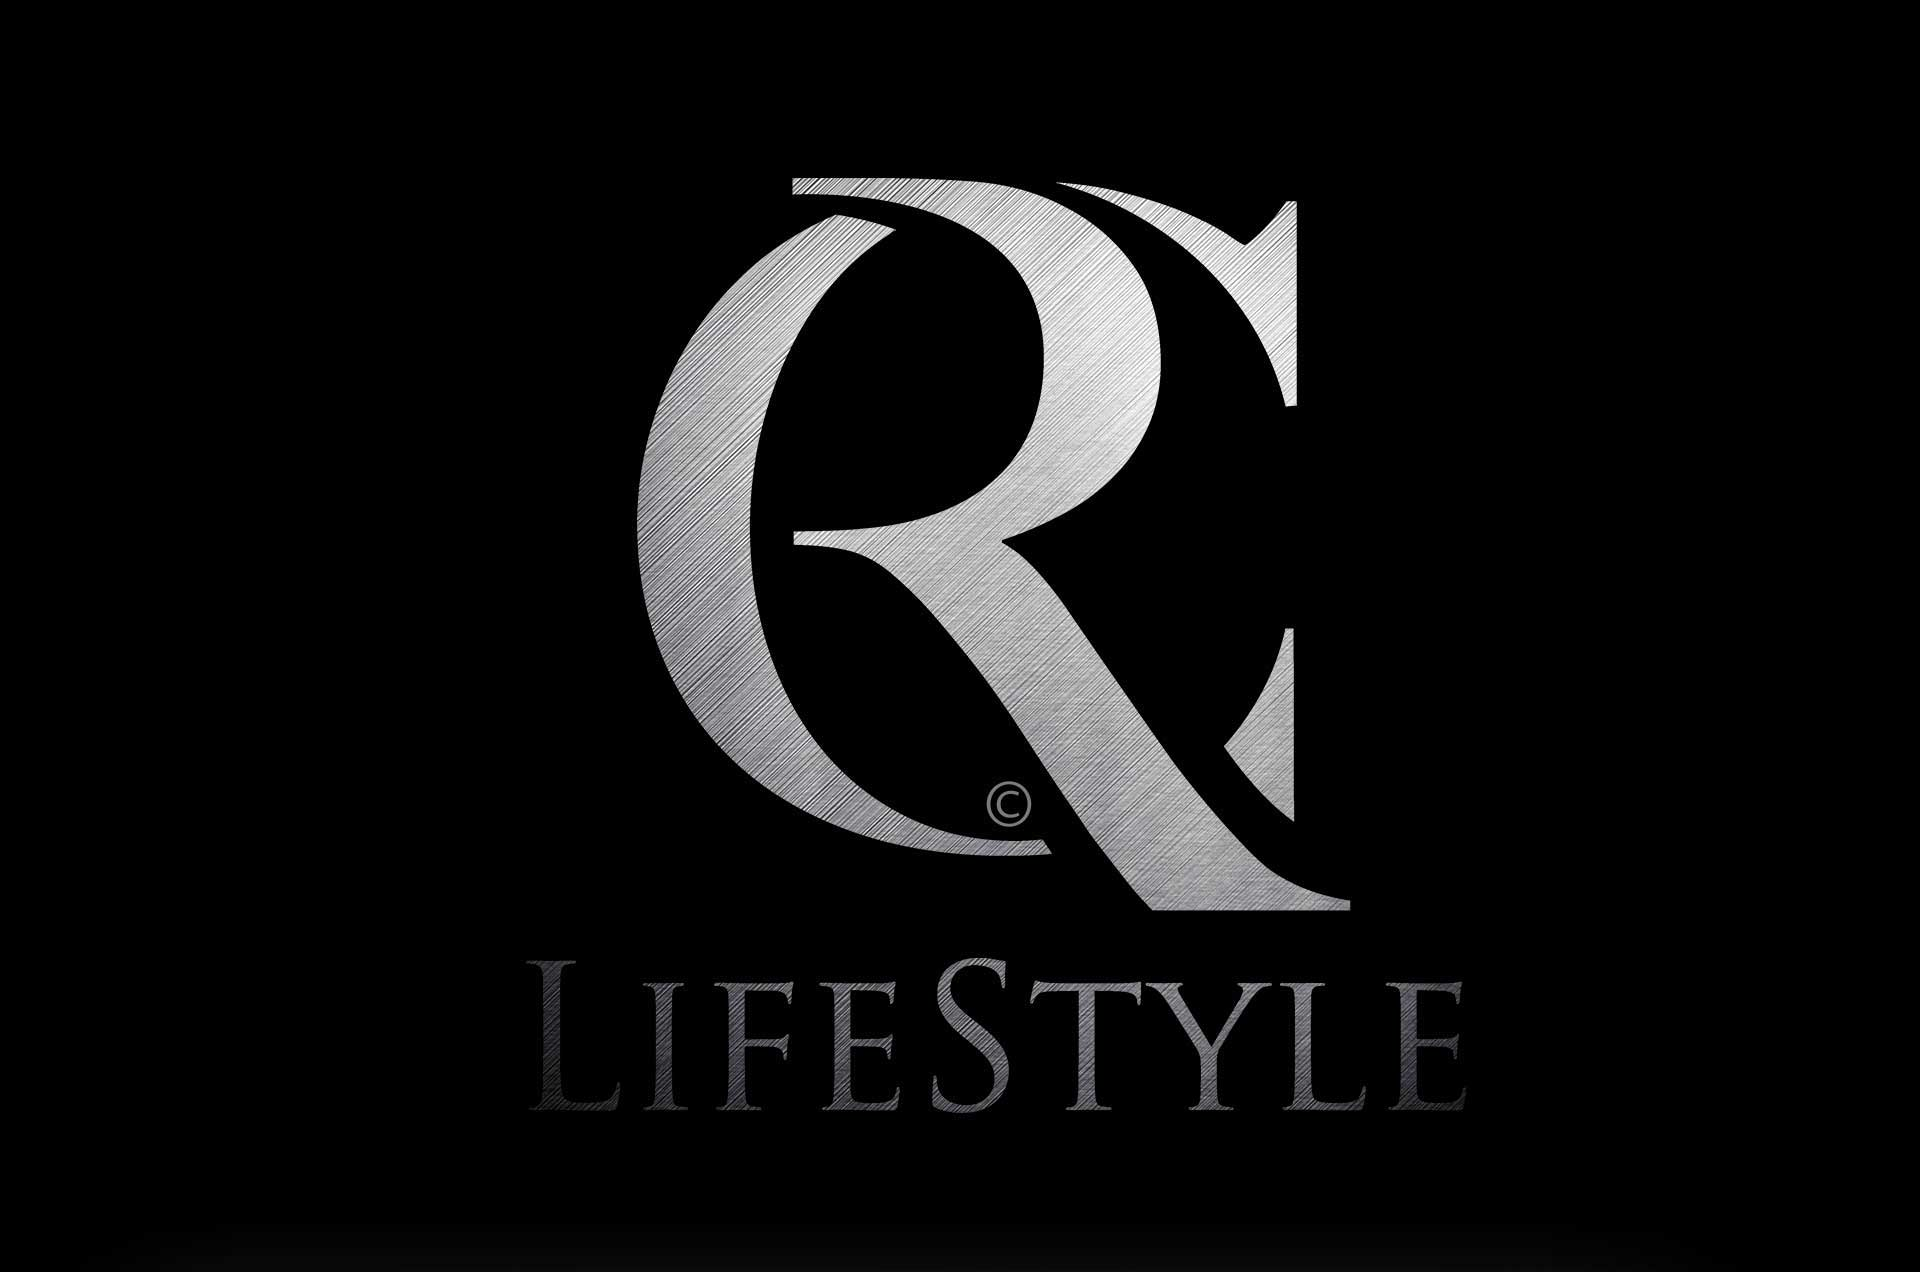 RC Lifestyle logo and brand ID. Gun metal finish on black background. Designed by Twistedgifted.